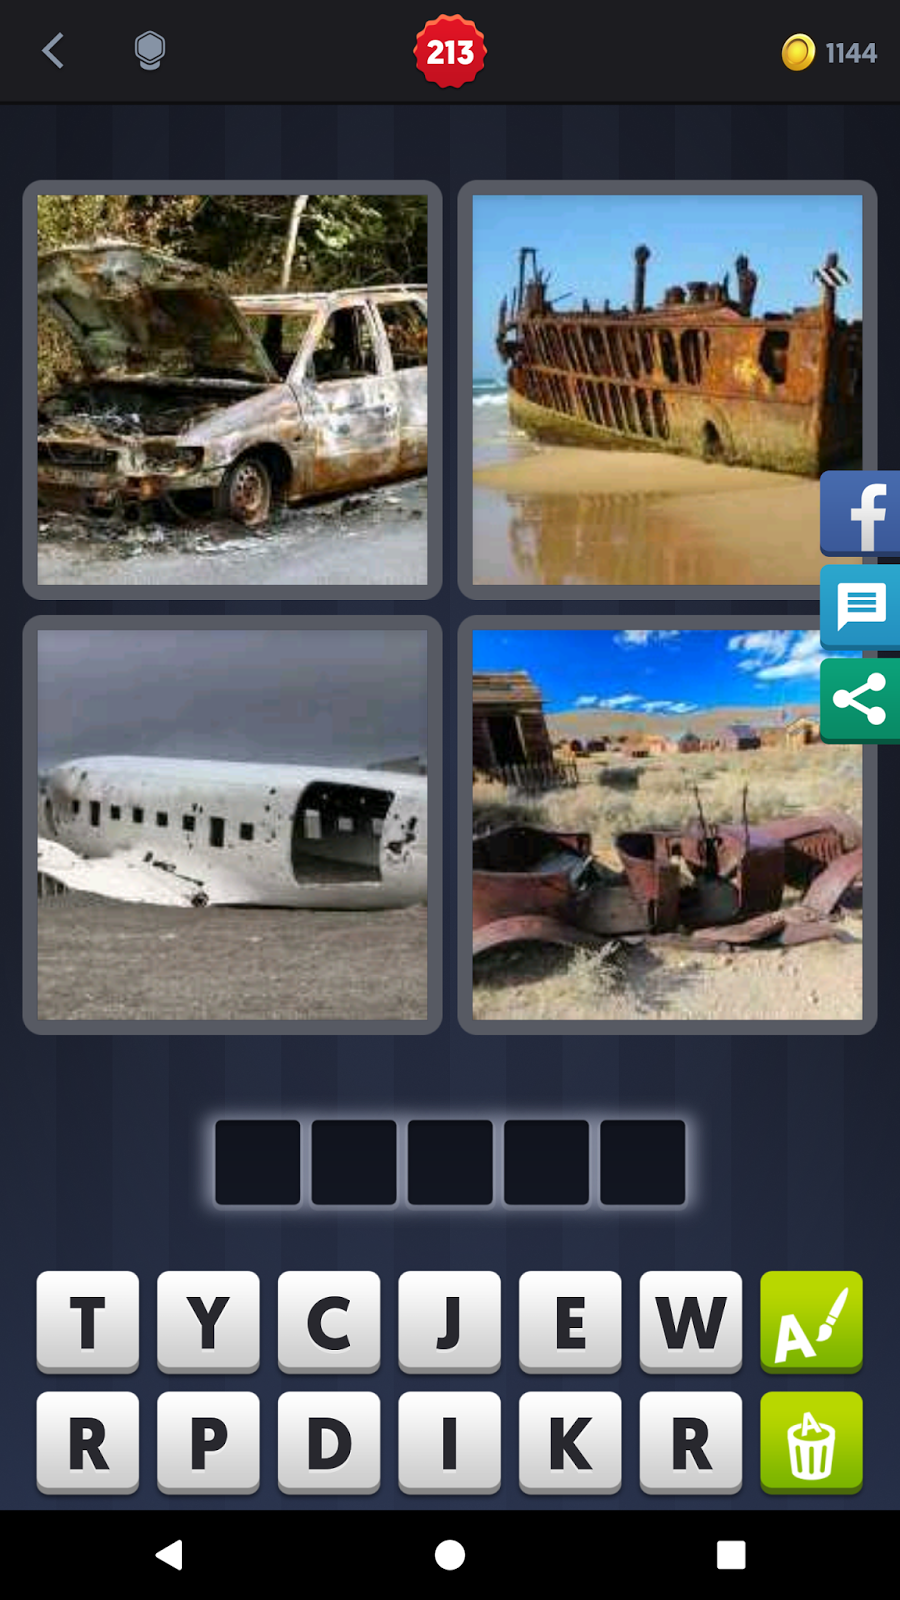 5 Letter Word Answers In 4 Pics Whats The Word Answers 5 Letter